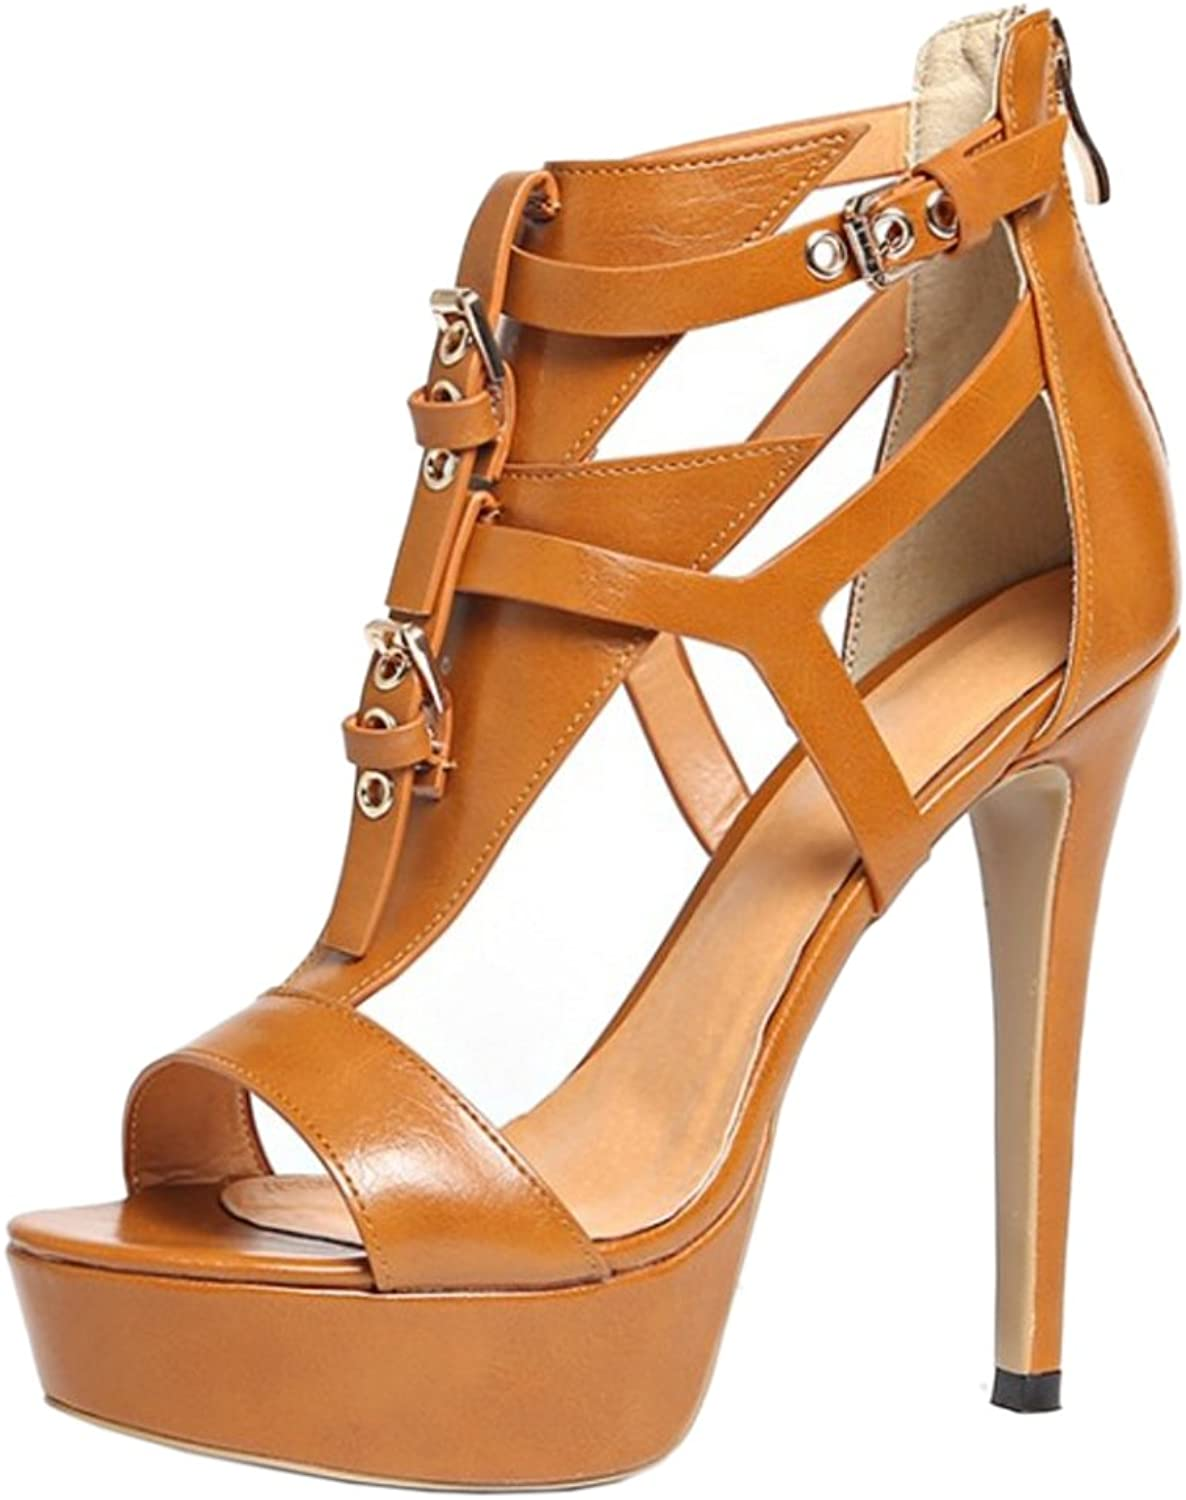 RizaBina Women Classical Peep Toe Sandals Stiletto High Heel Platform Strappy shoes